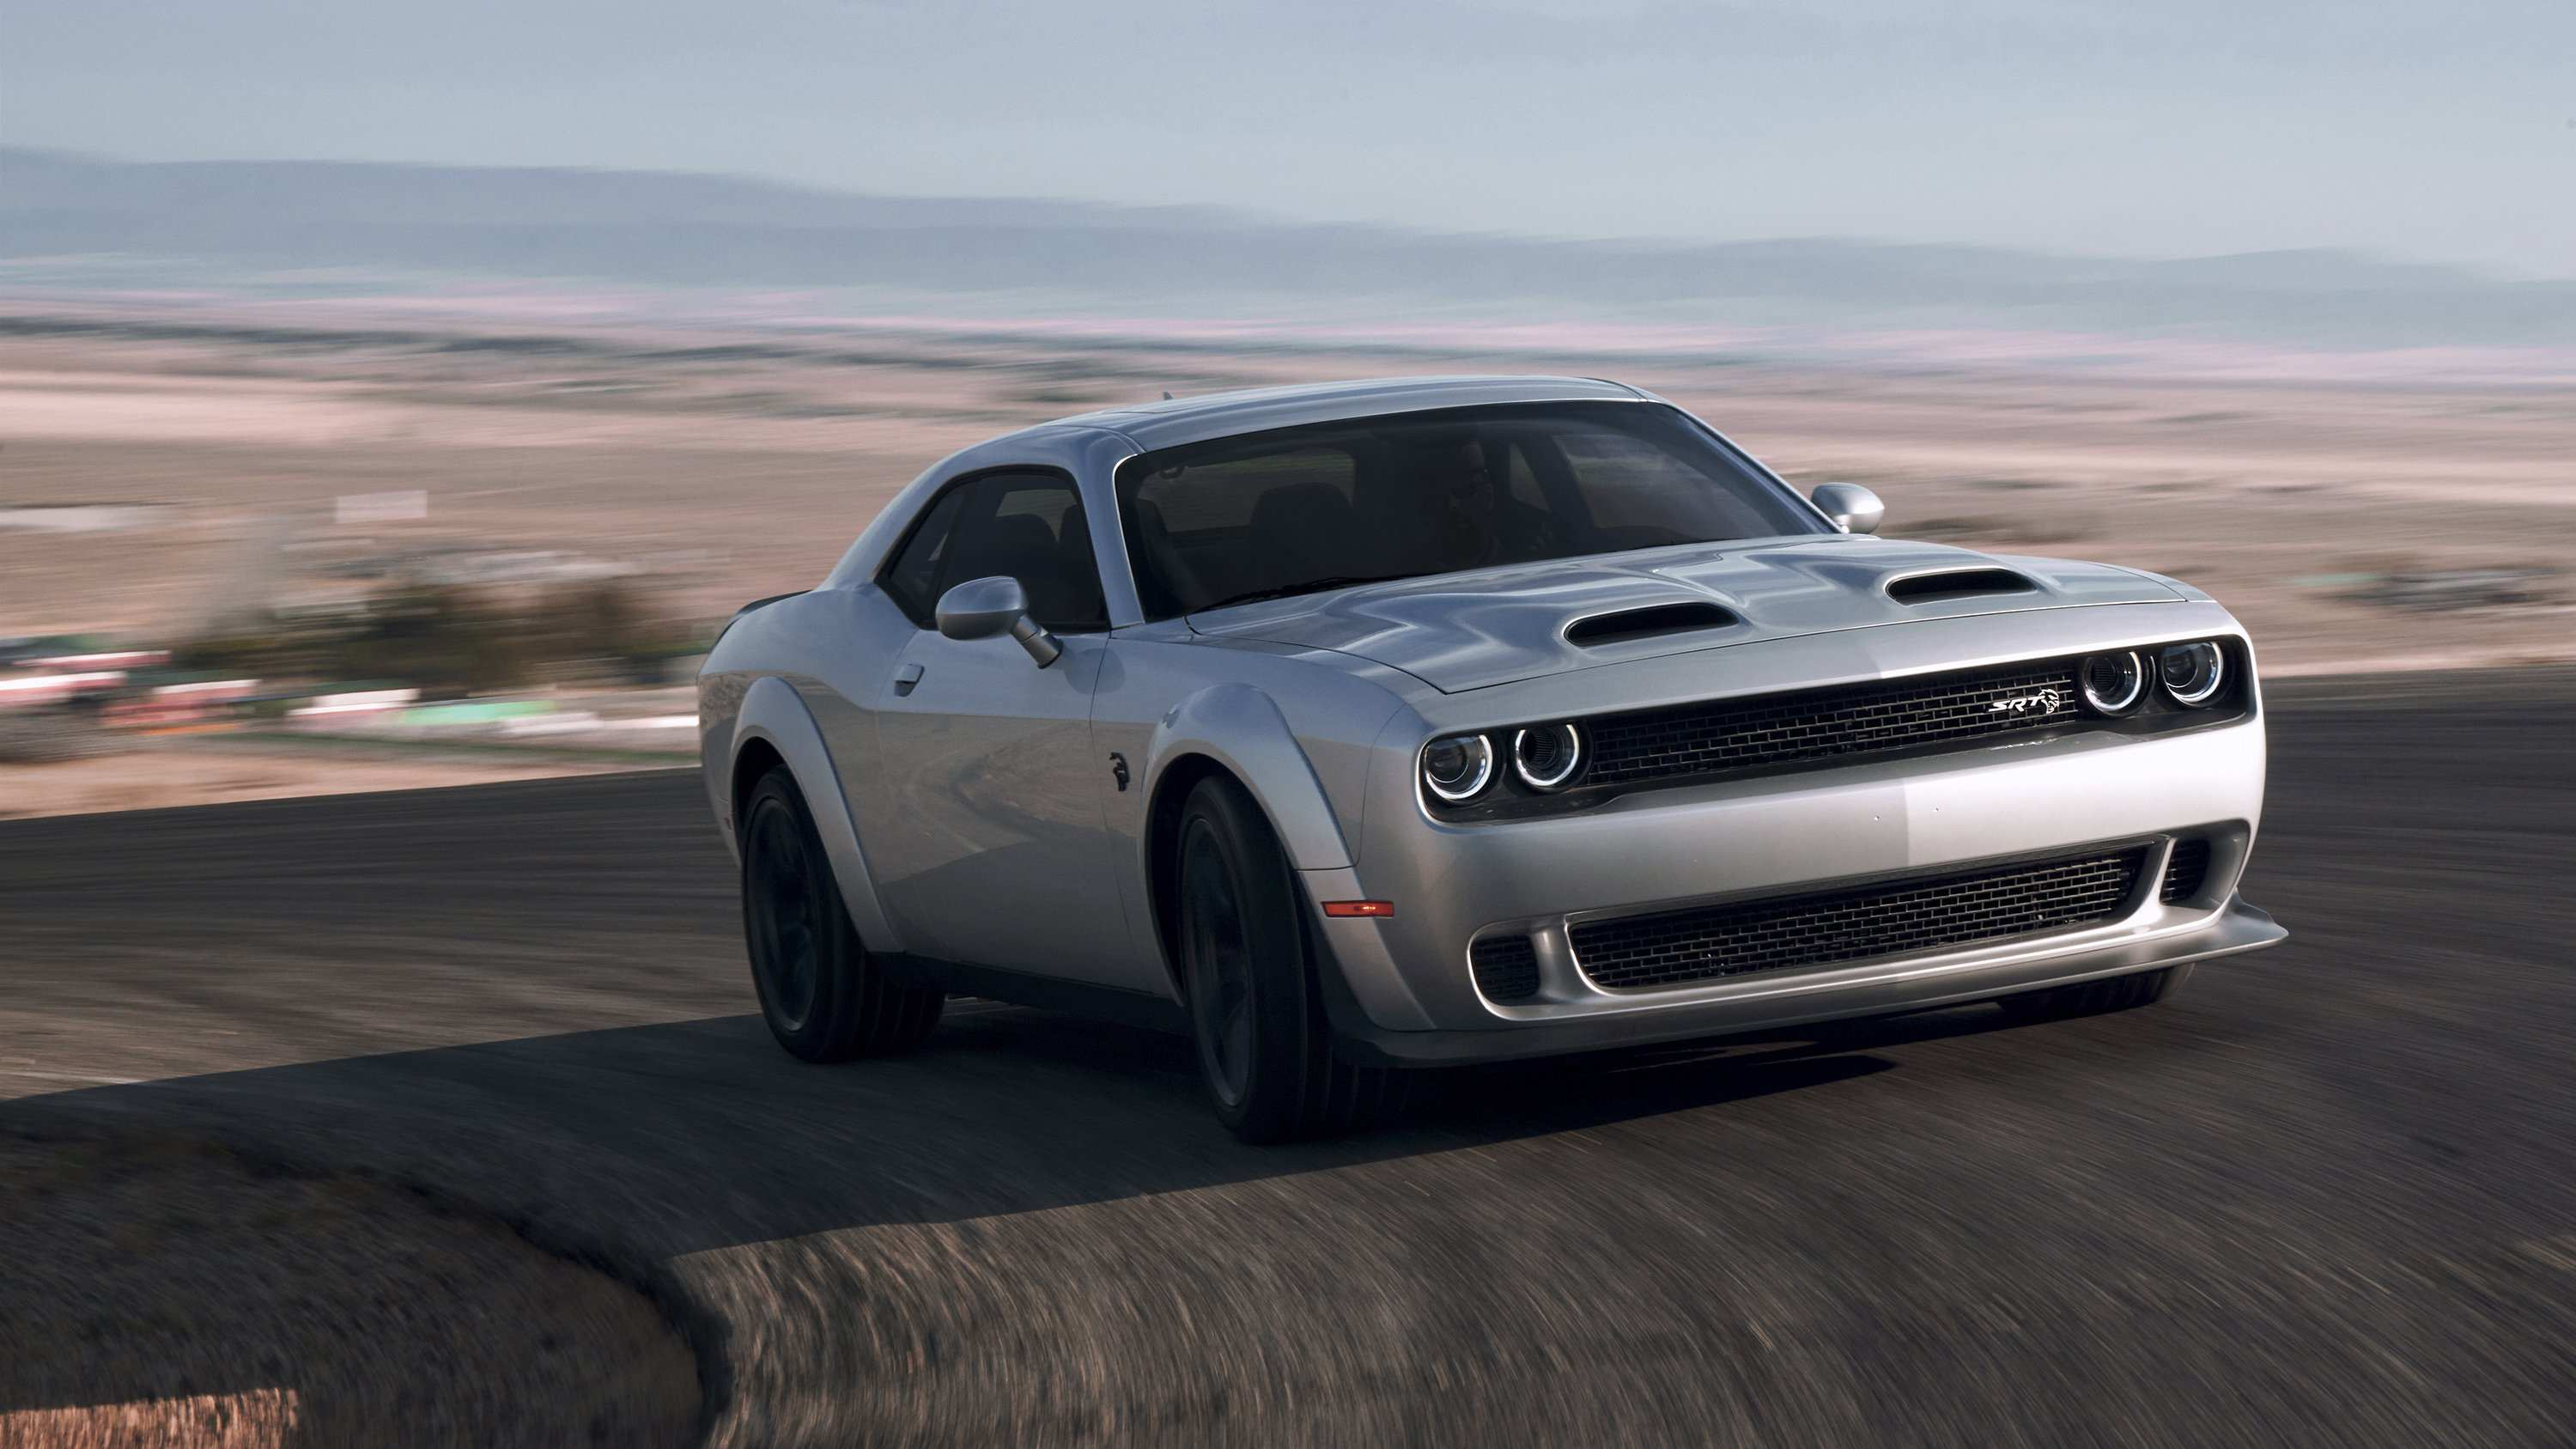 98 Best 2020 Dodge Challenger Hellcat Wallpaper